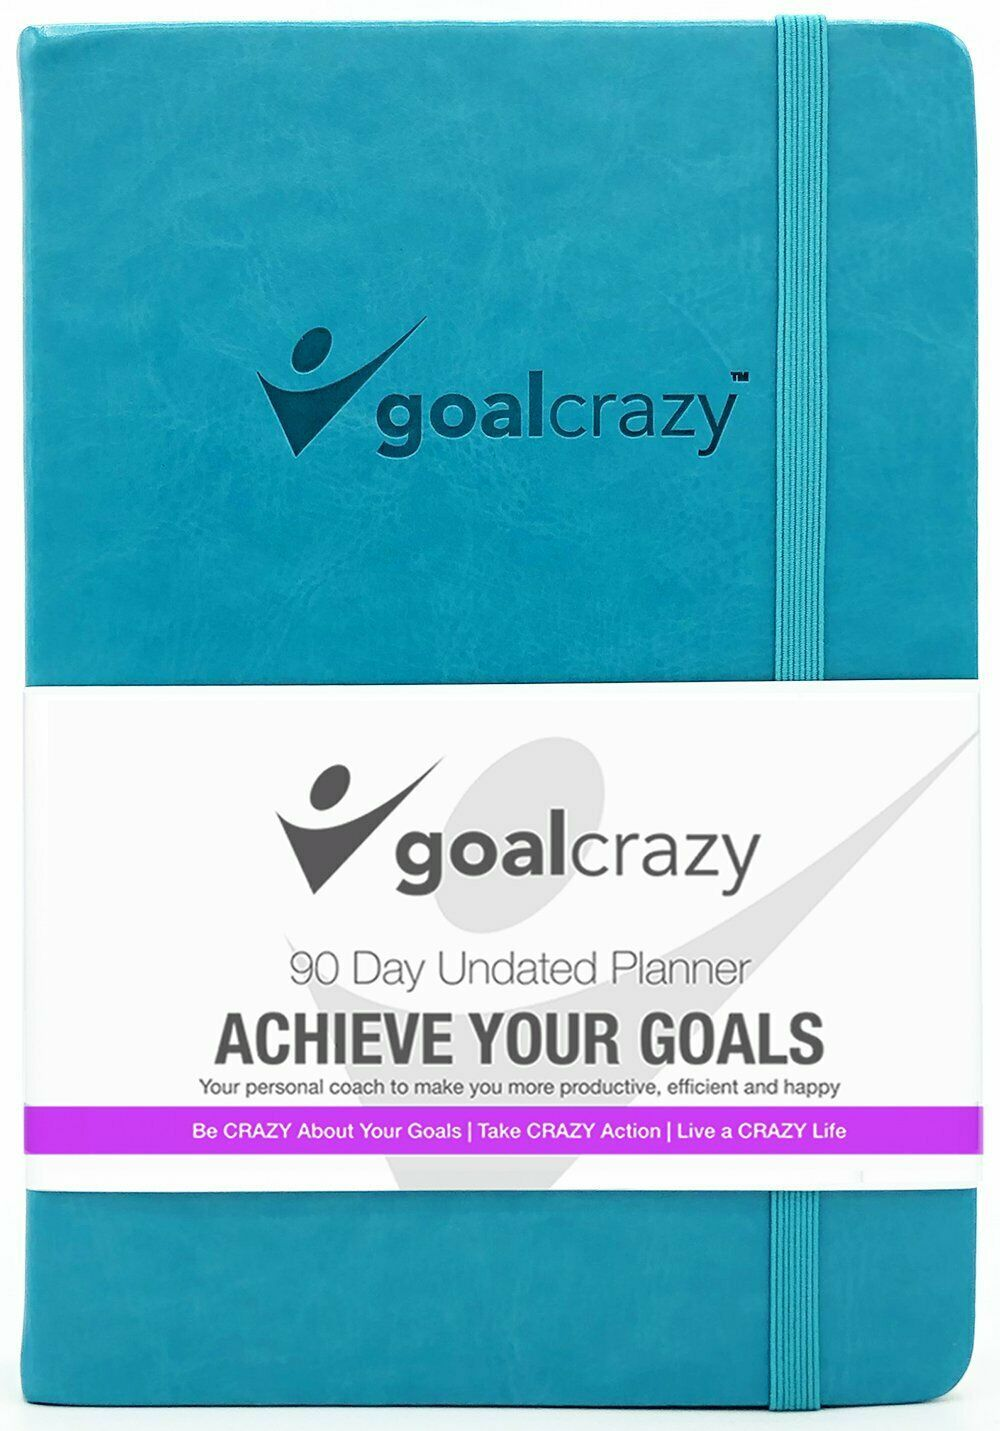 Goal Crazy 2019 Planner - 90 Day Productivity Journal, Black Leather, Undated image 9